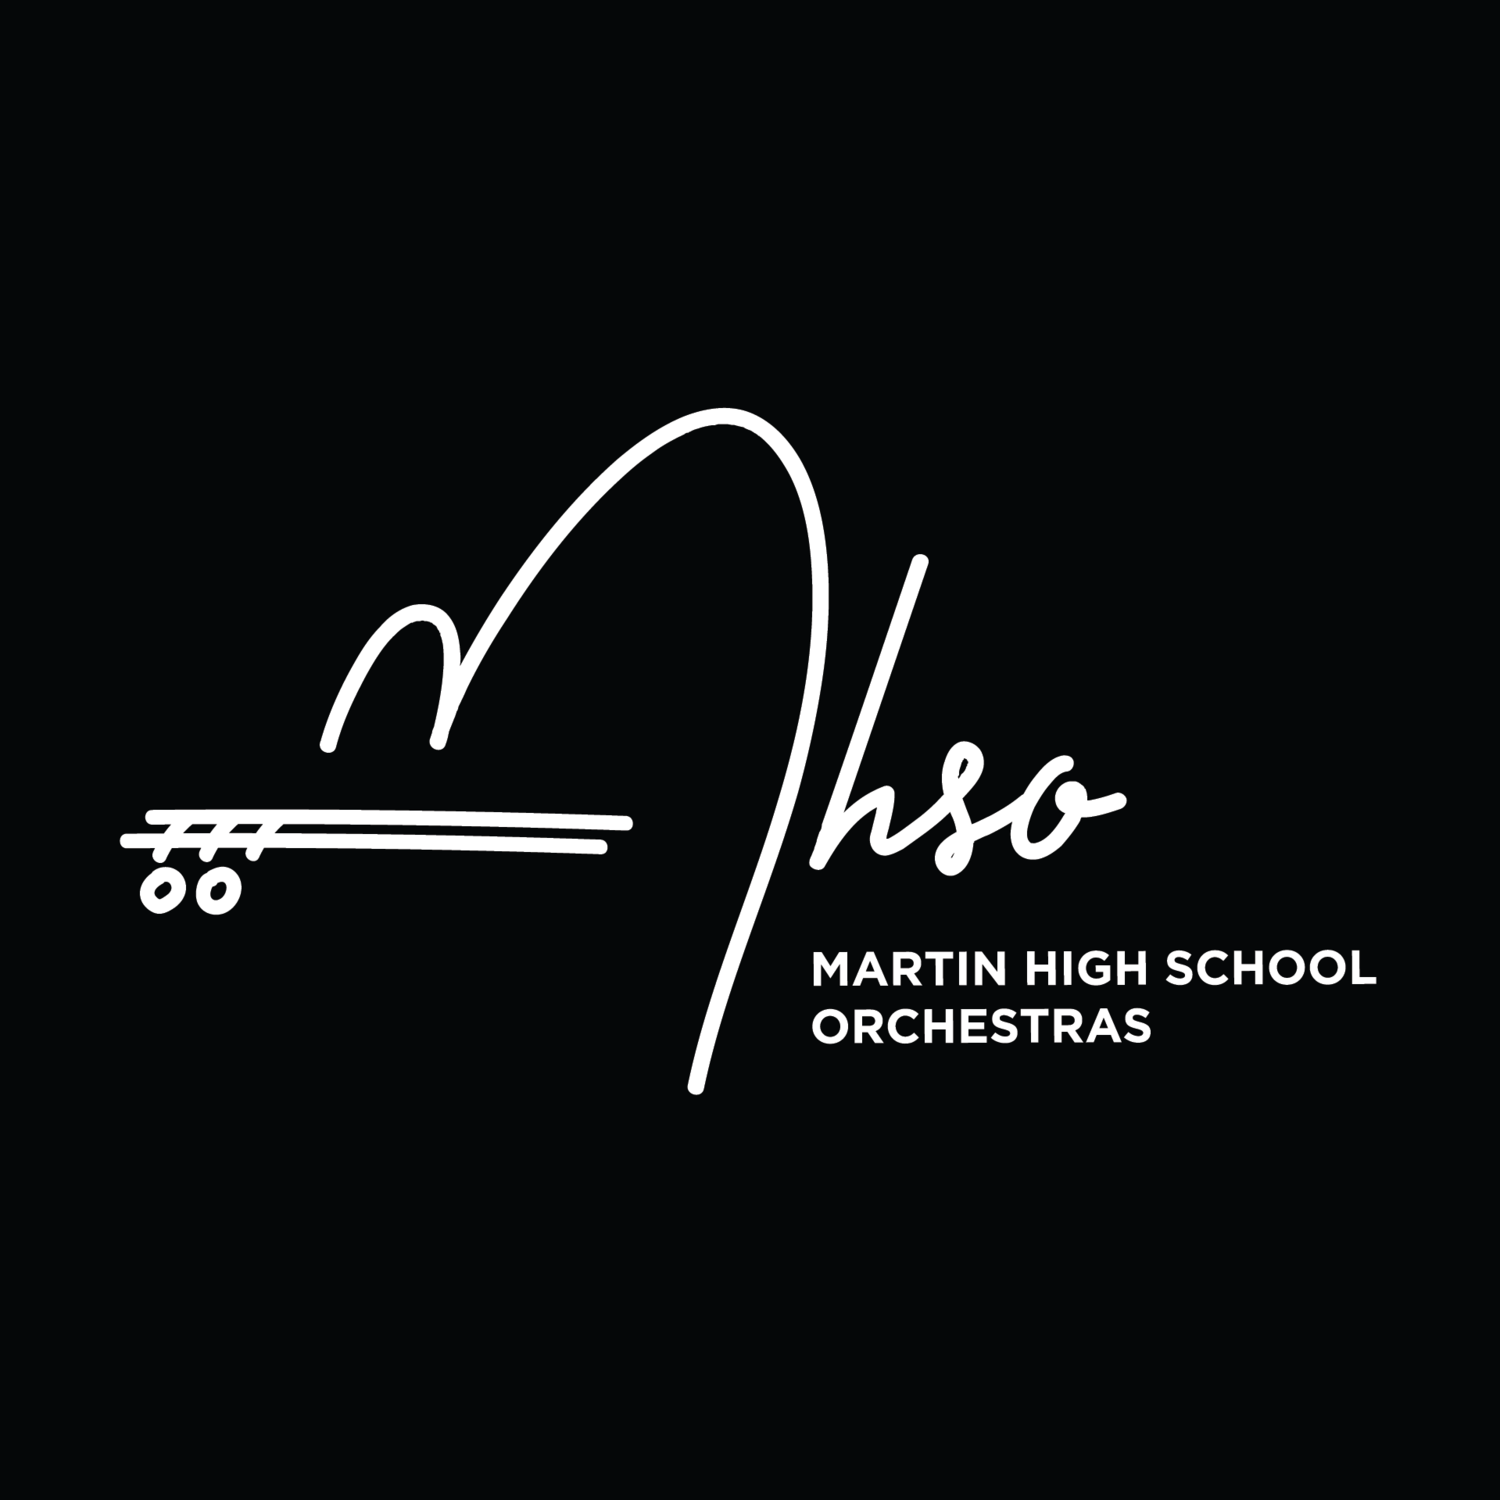 Martin High School Orchestra